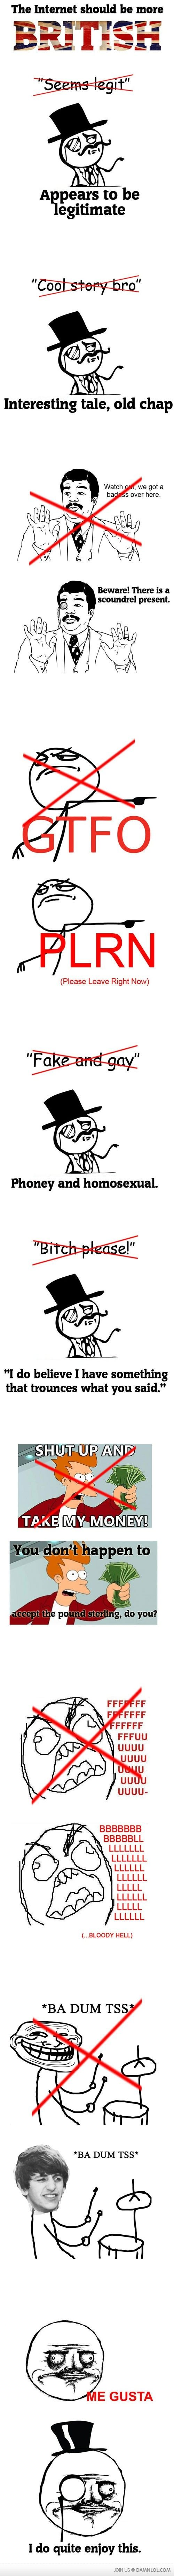 british is good. :): Laughing, Memes, Funny Image, Funny Pics, Funny Pictures, British Version, Humor, Internet, British Accent